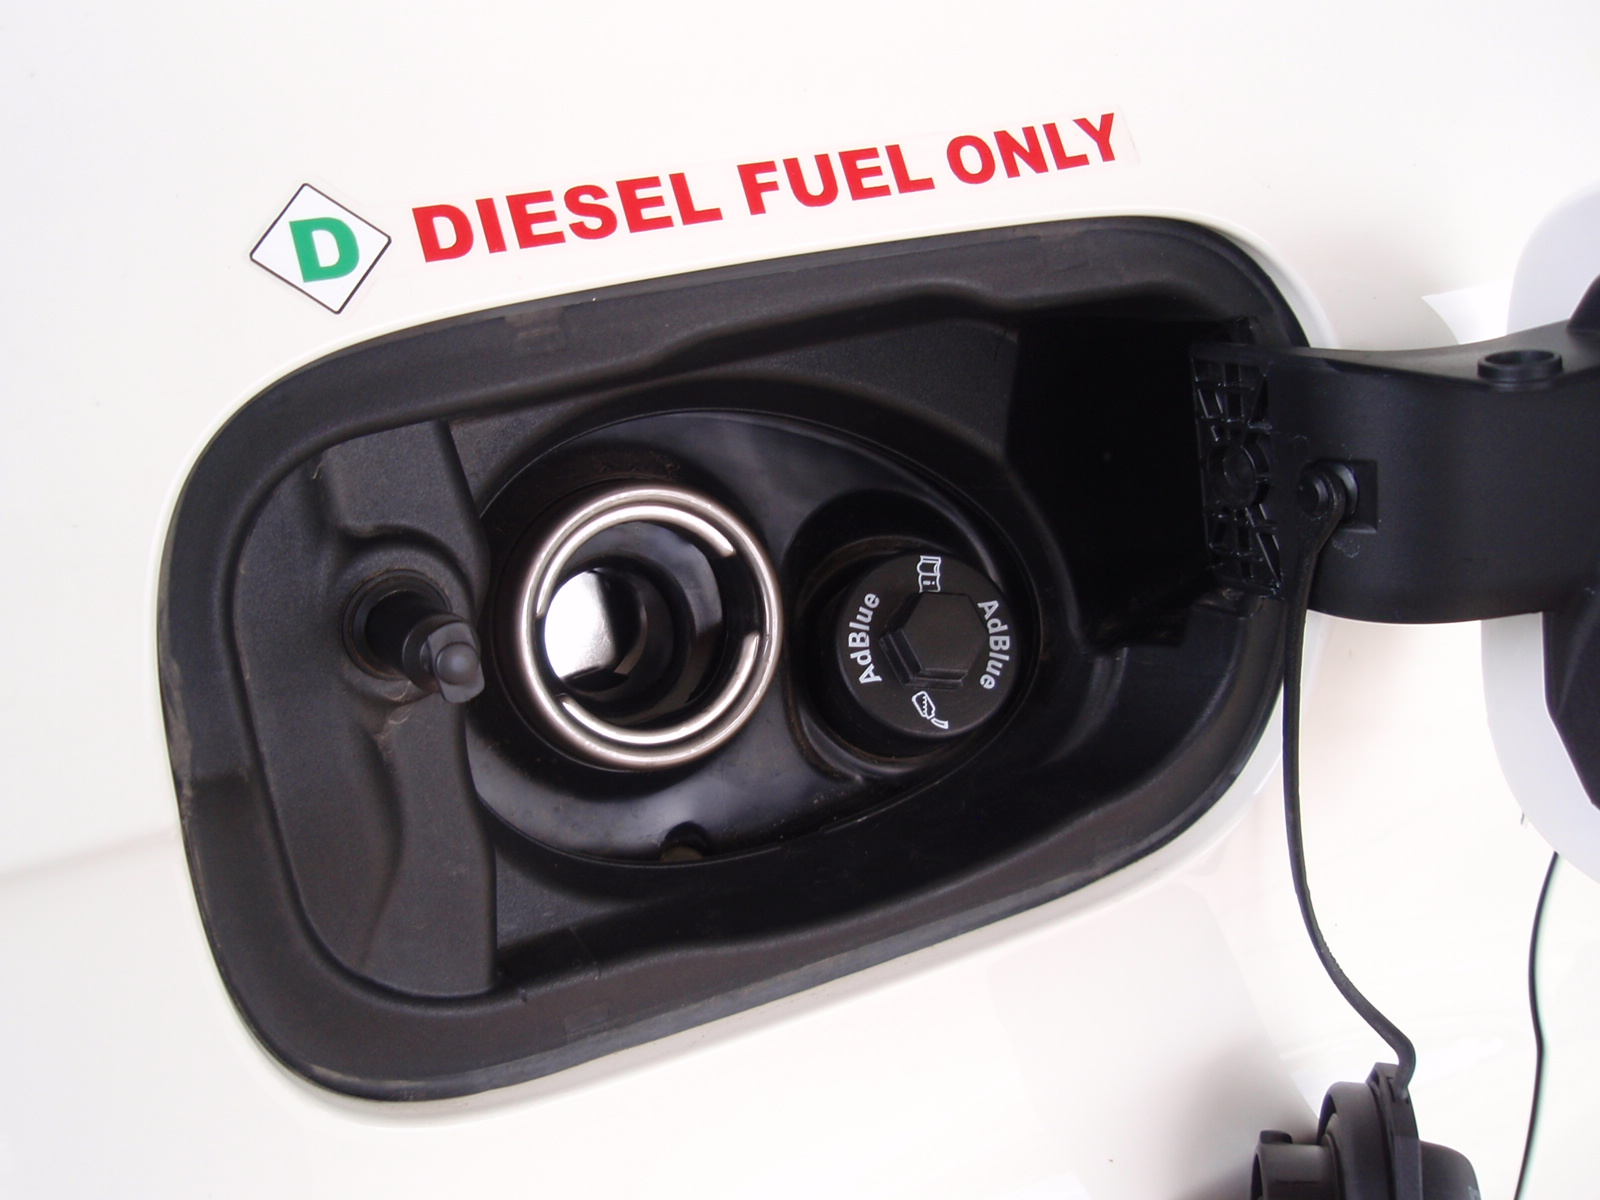 Diesel Car Guide Every Car Light Truck With Specs UPDATED - Audi diesel cars for sale